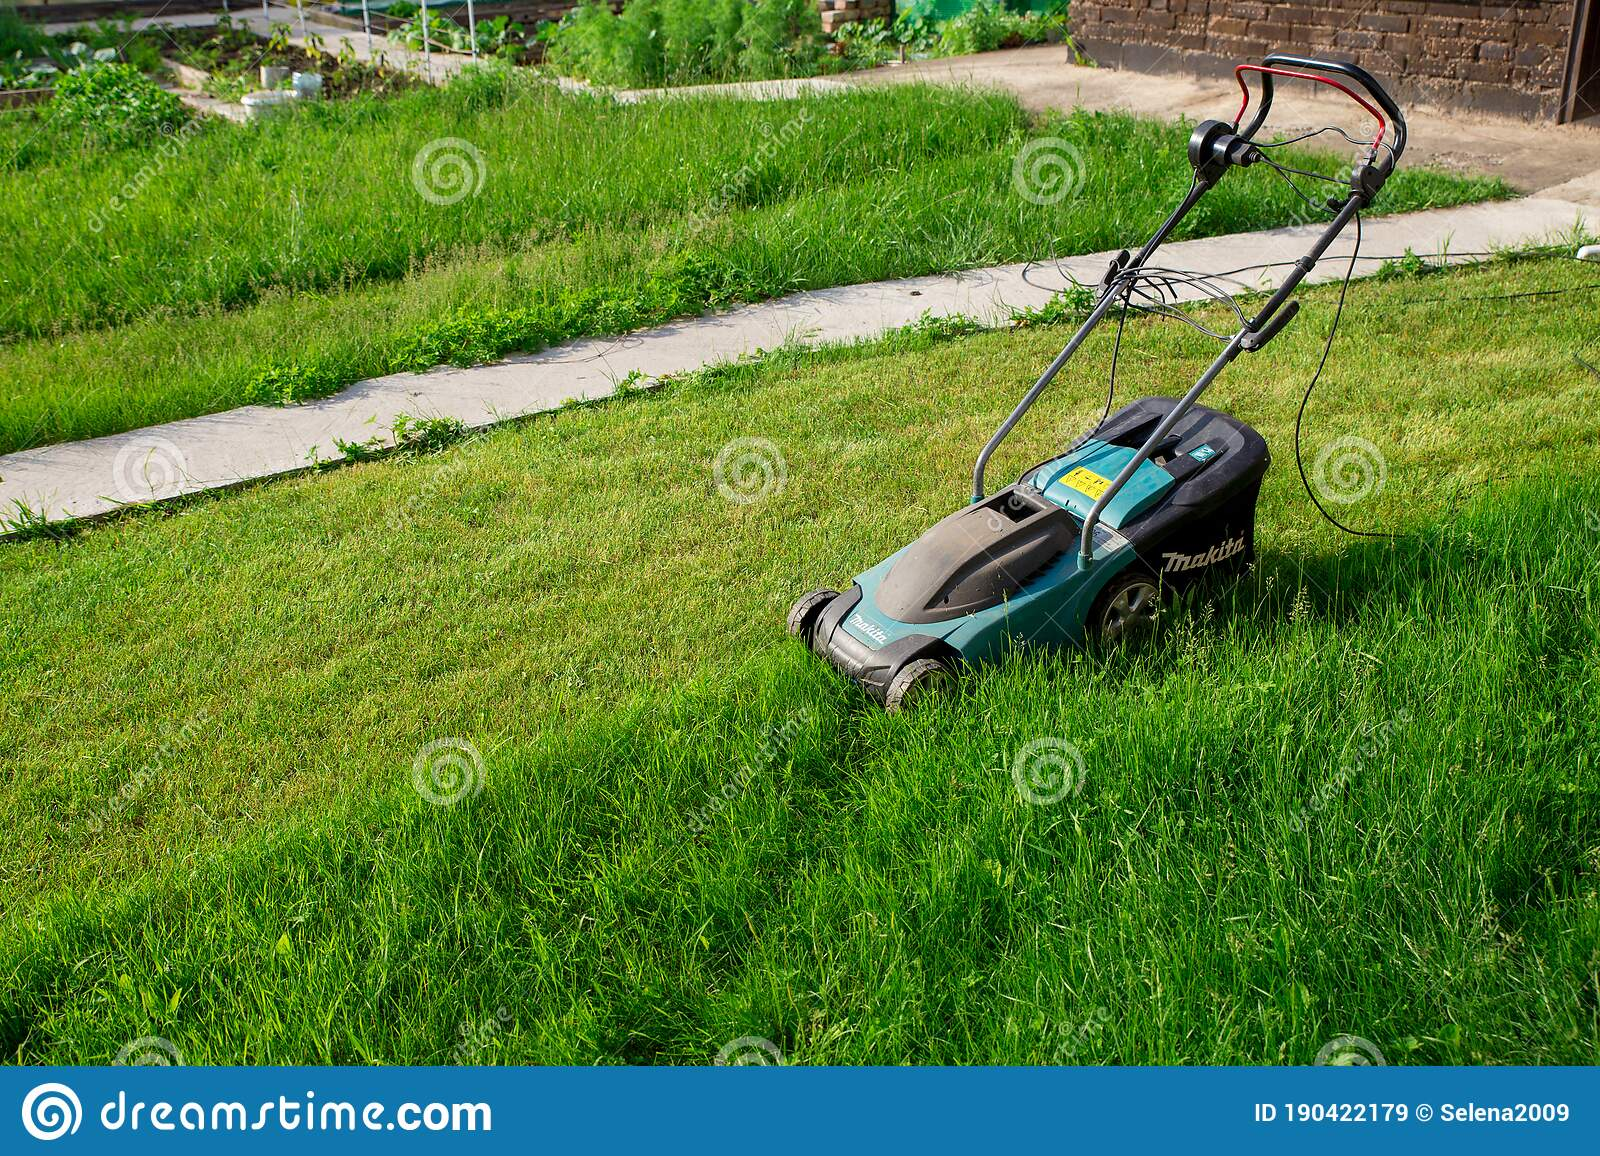 Electric Lawn Mower Makita The Green Lawn Is Mowed With A Lawn Mower A Half Mown Lawn The Concept Of A Beautiful Manicured Lawn Editorial Stock Image Image Of Ground Cutting 190422179